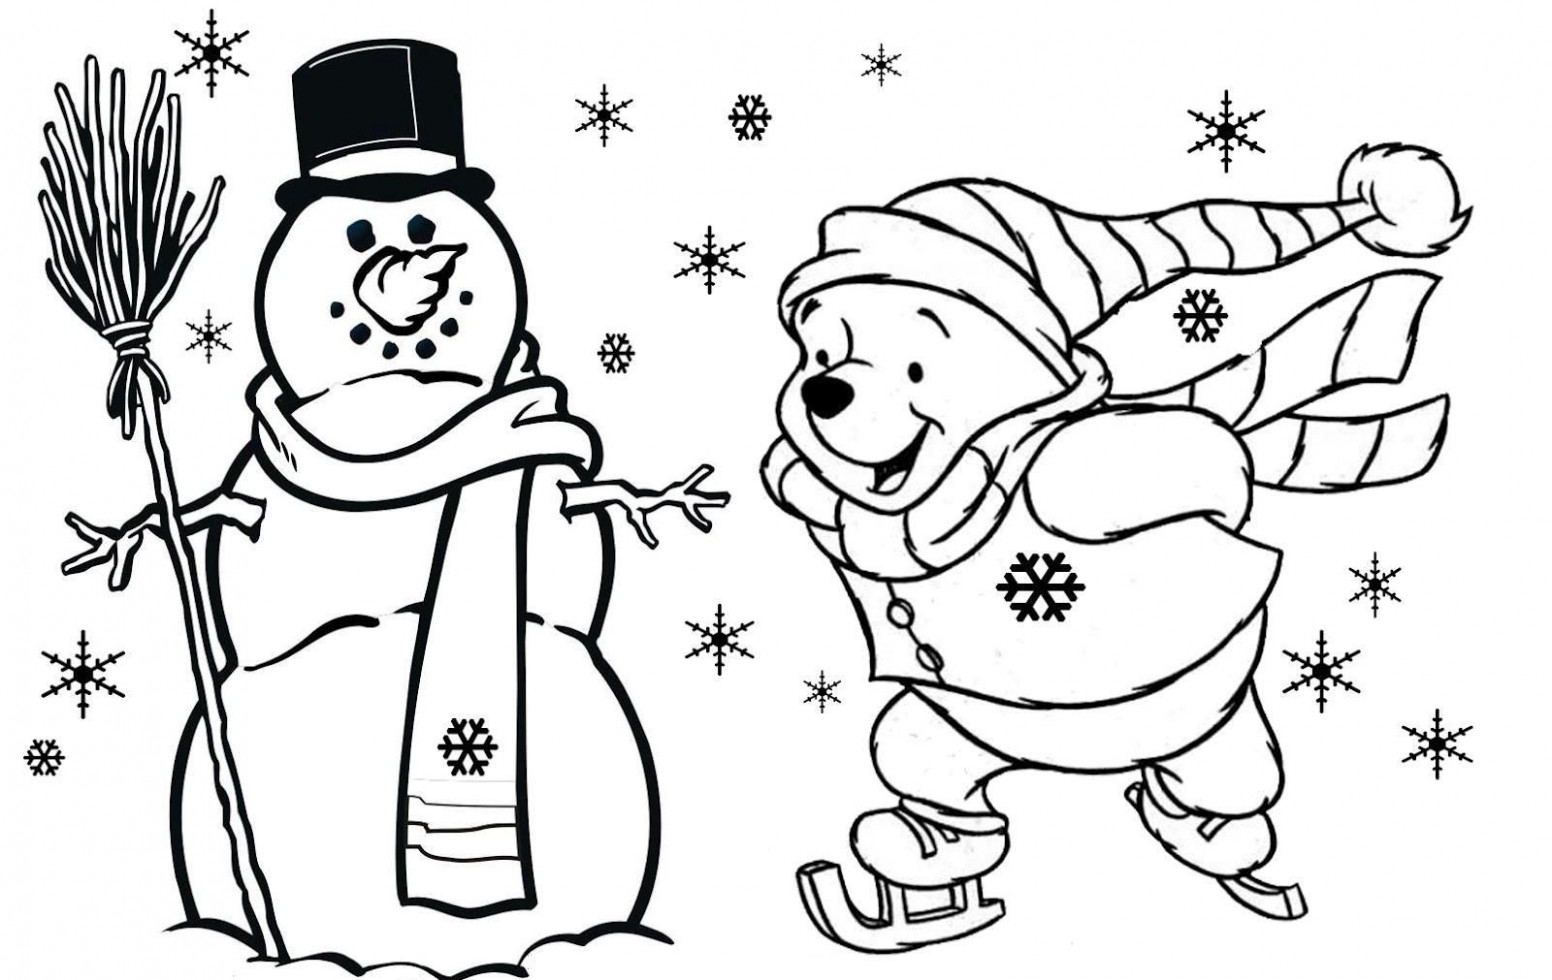 Winnie The Pooh Free Christmas Coloring Pages For Kids | Christmas ..